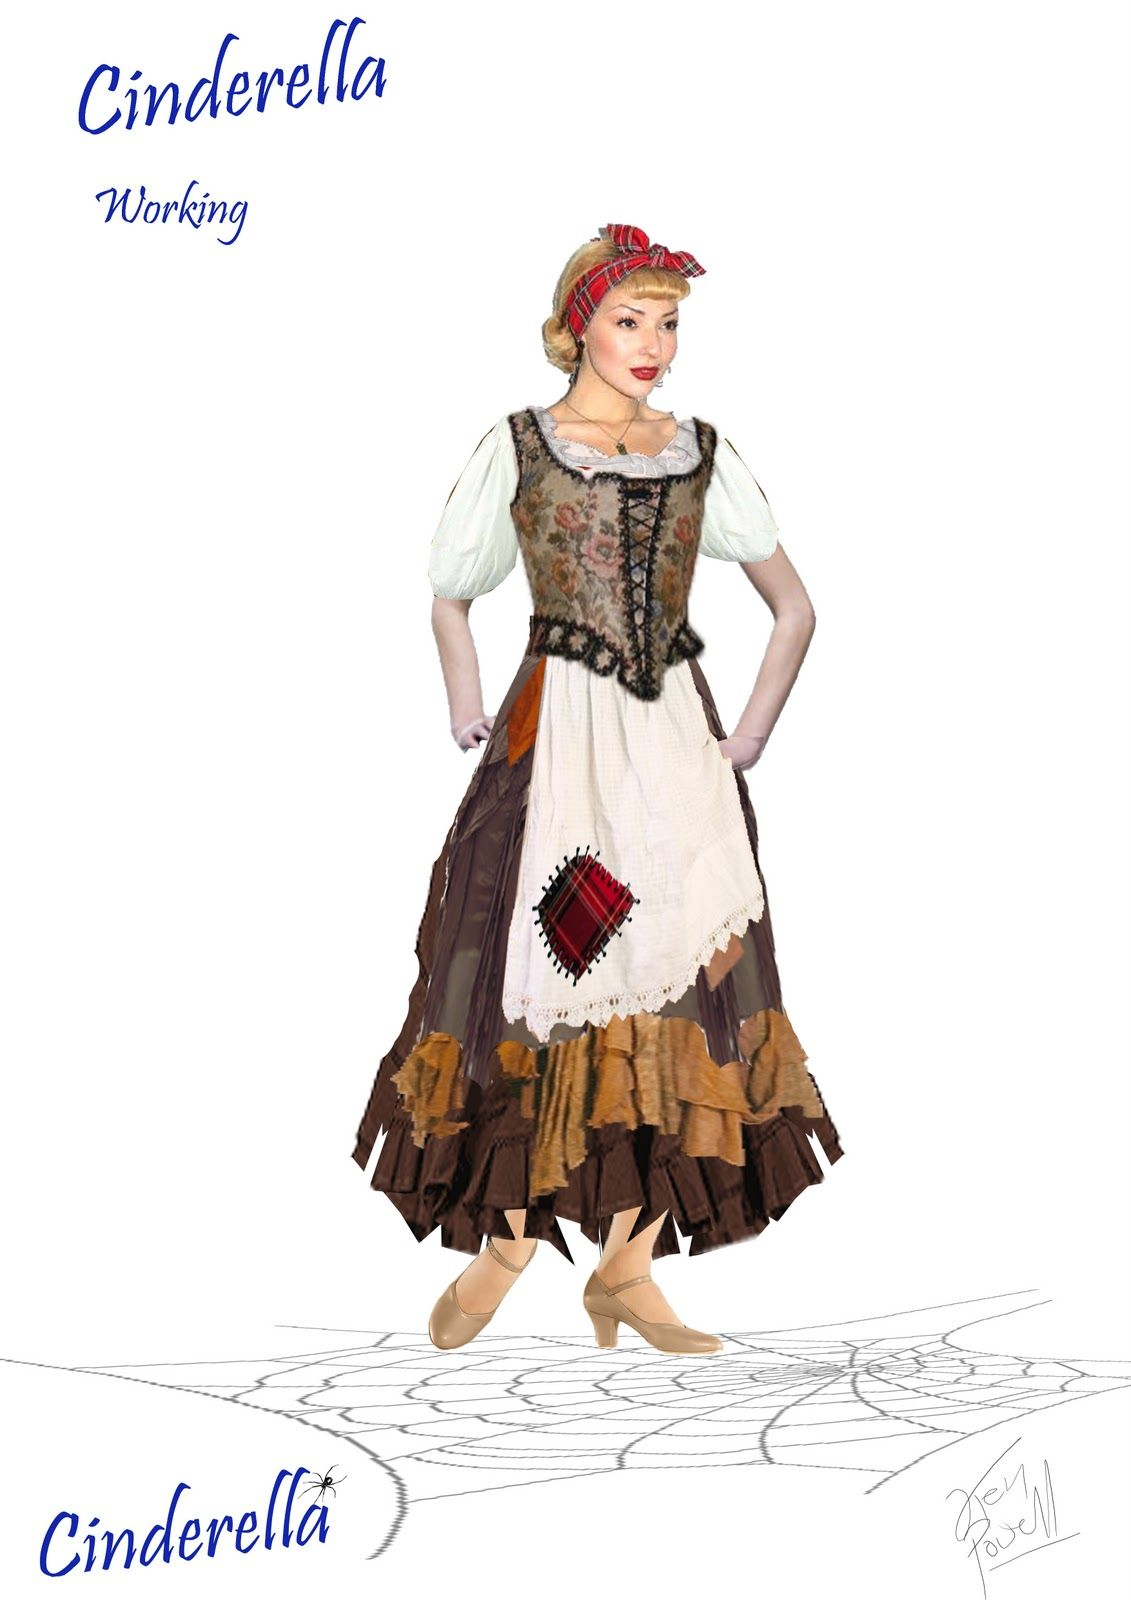 Cinderella Cinderella Costume Costume Design Fashion Costume